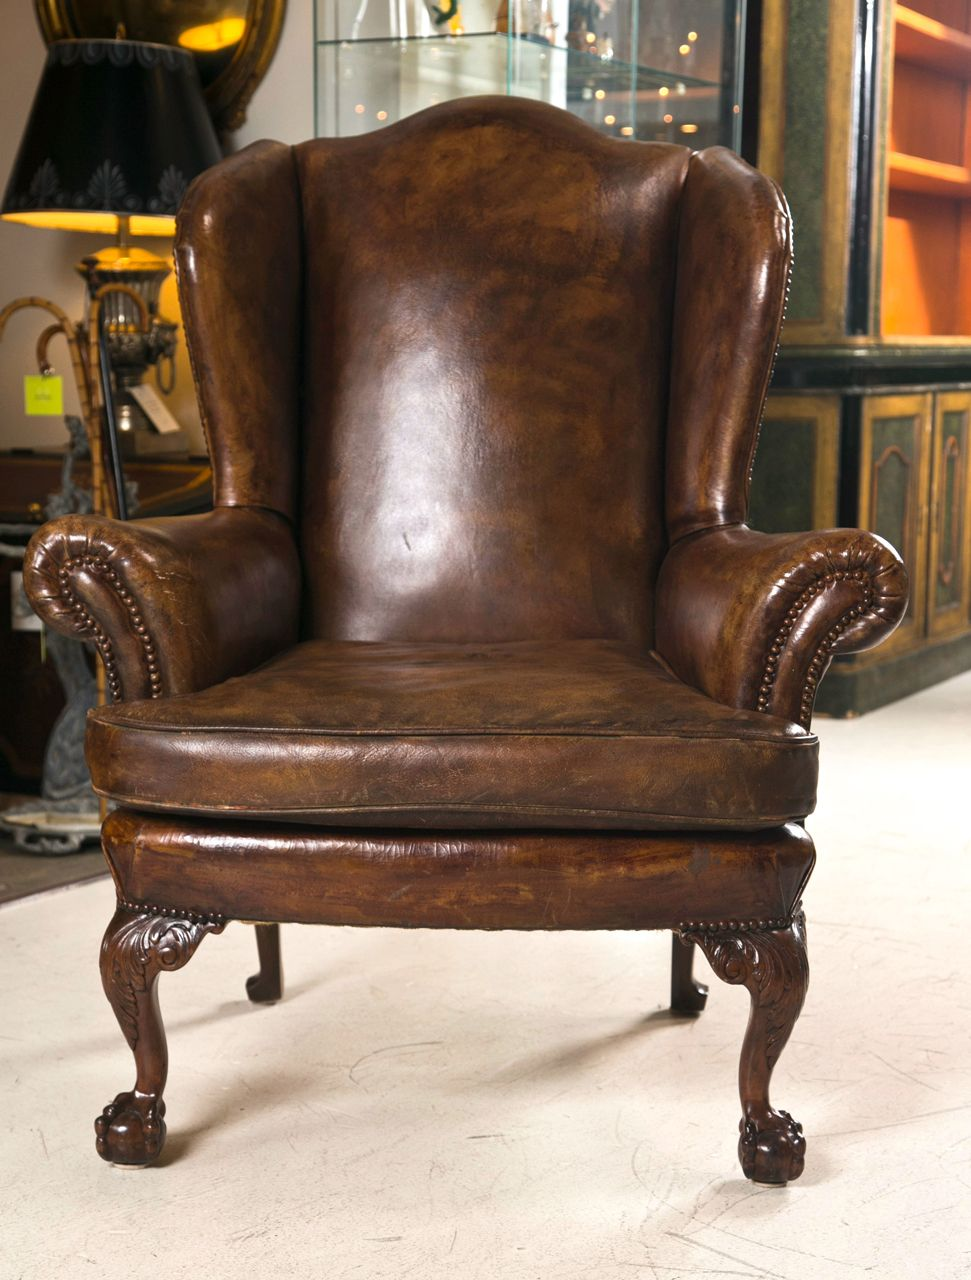 leather wingback chair - Google Search - Late 19th C Leather Wingback Chair With Ball And Claw Feet In 2018